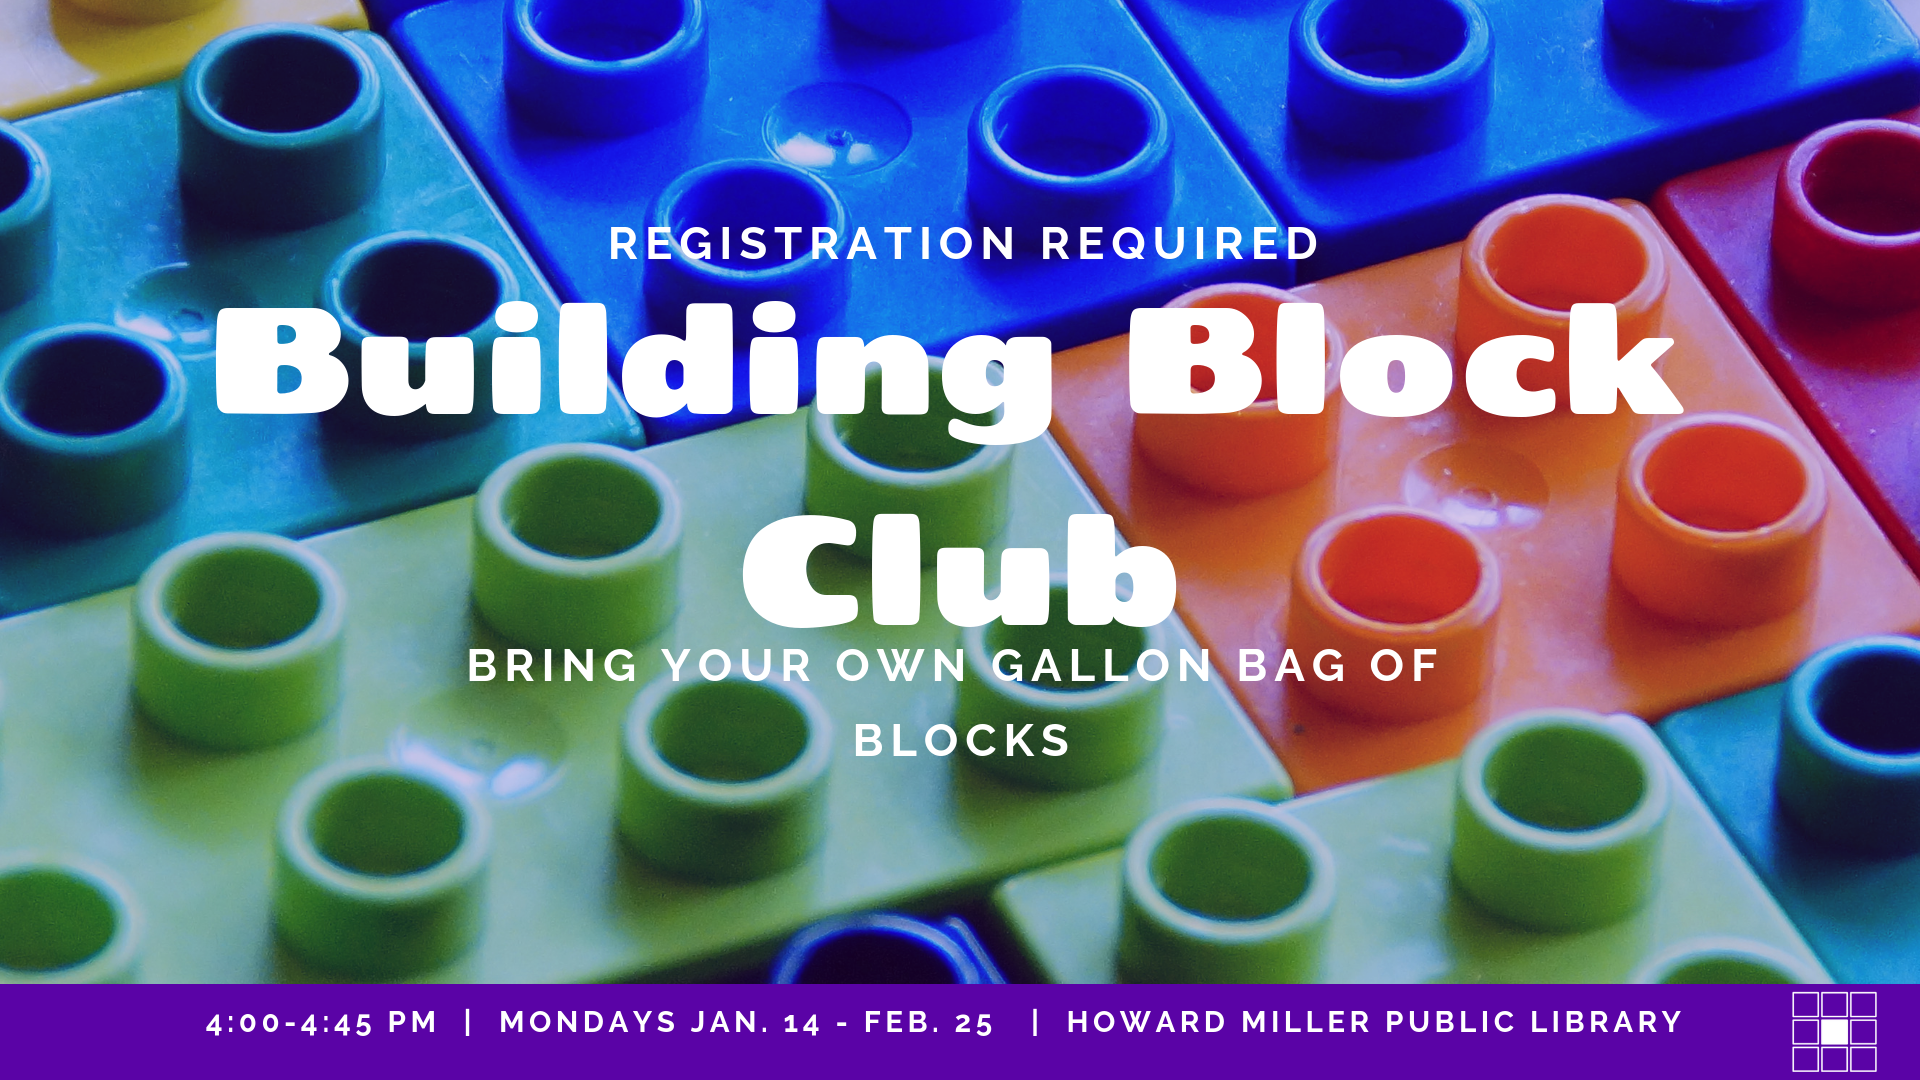 Building block club Event Image. Mondays January 14 to February 25 at 4 PM